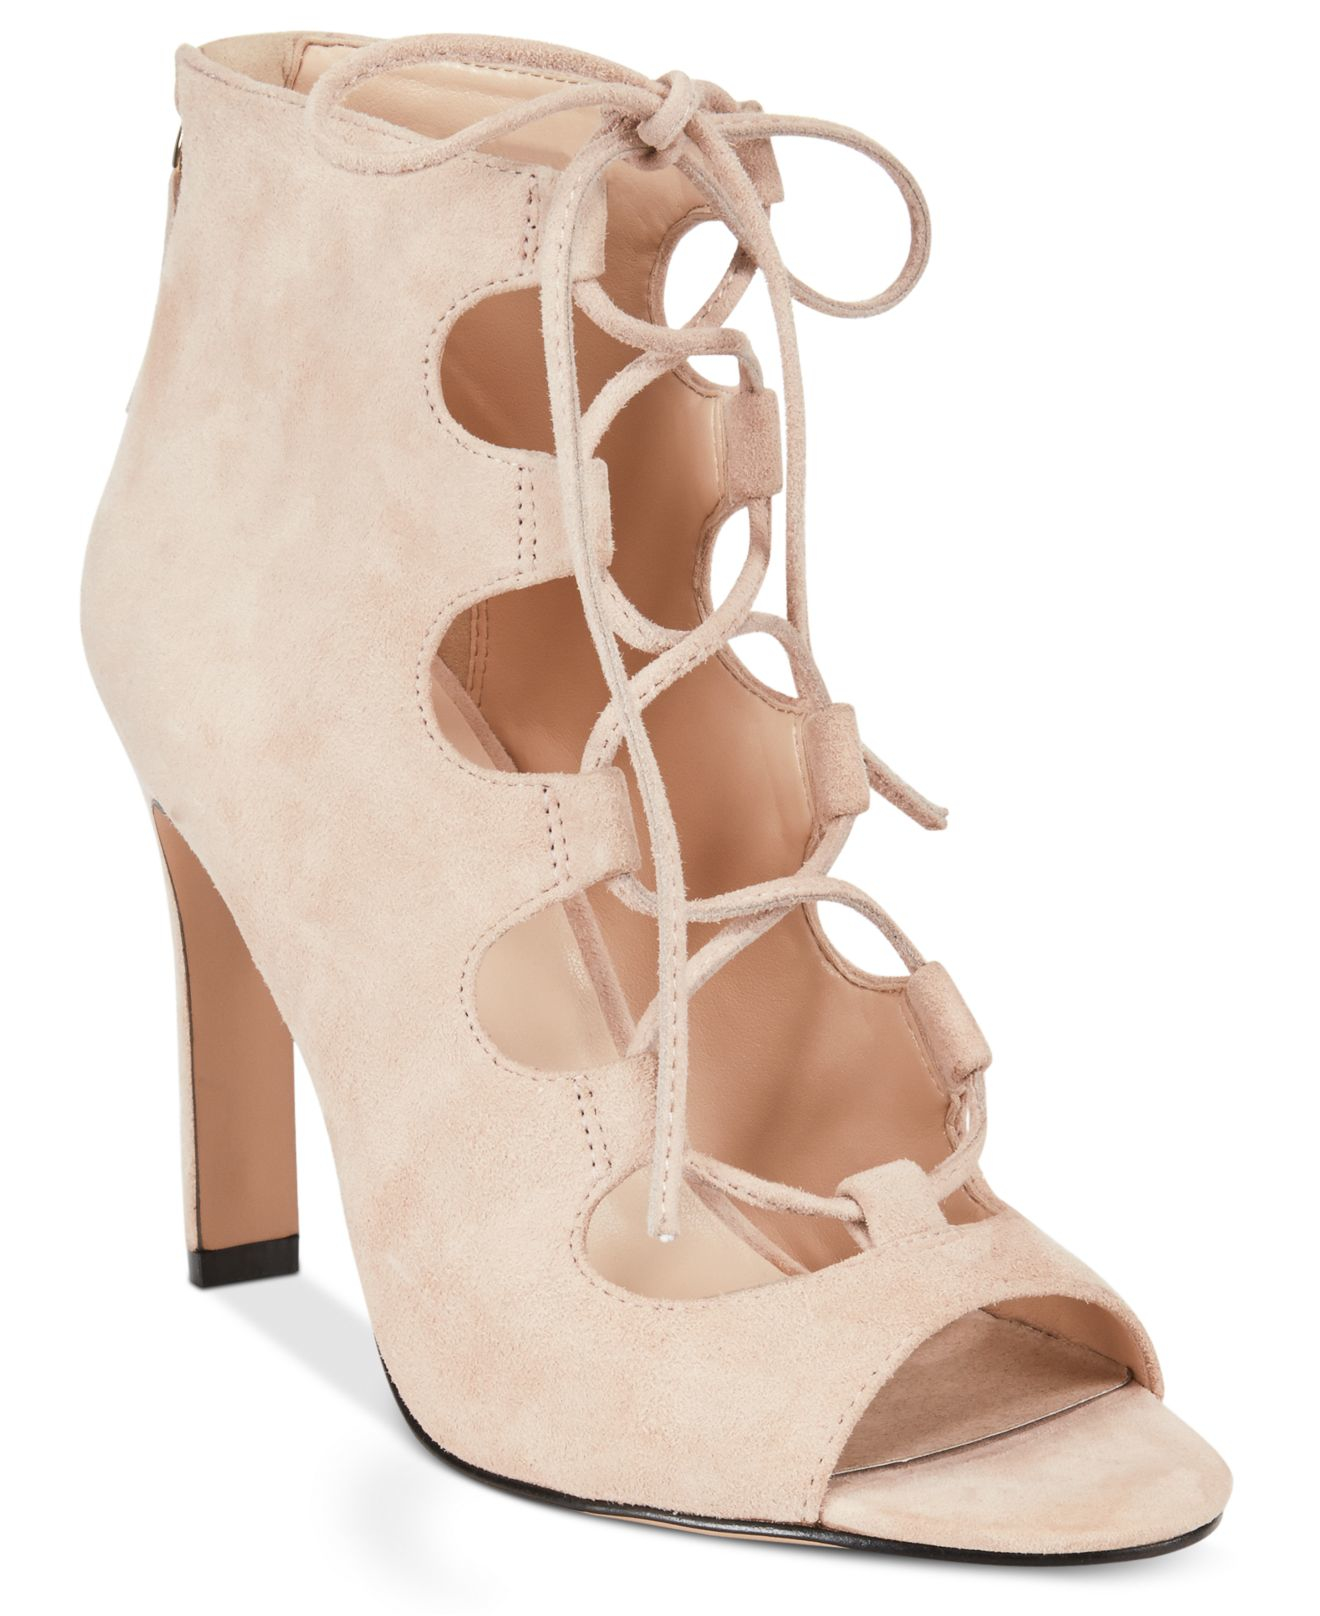 Dress Sandals in Light Pink Suede (Pink